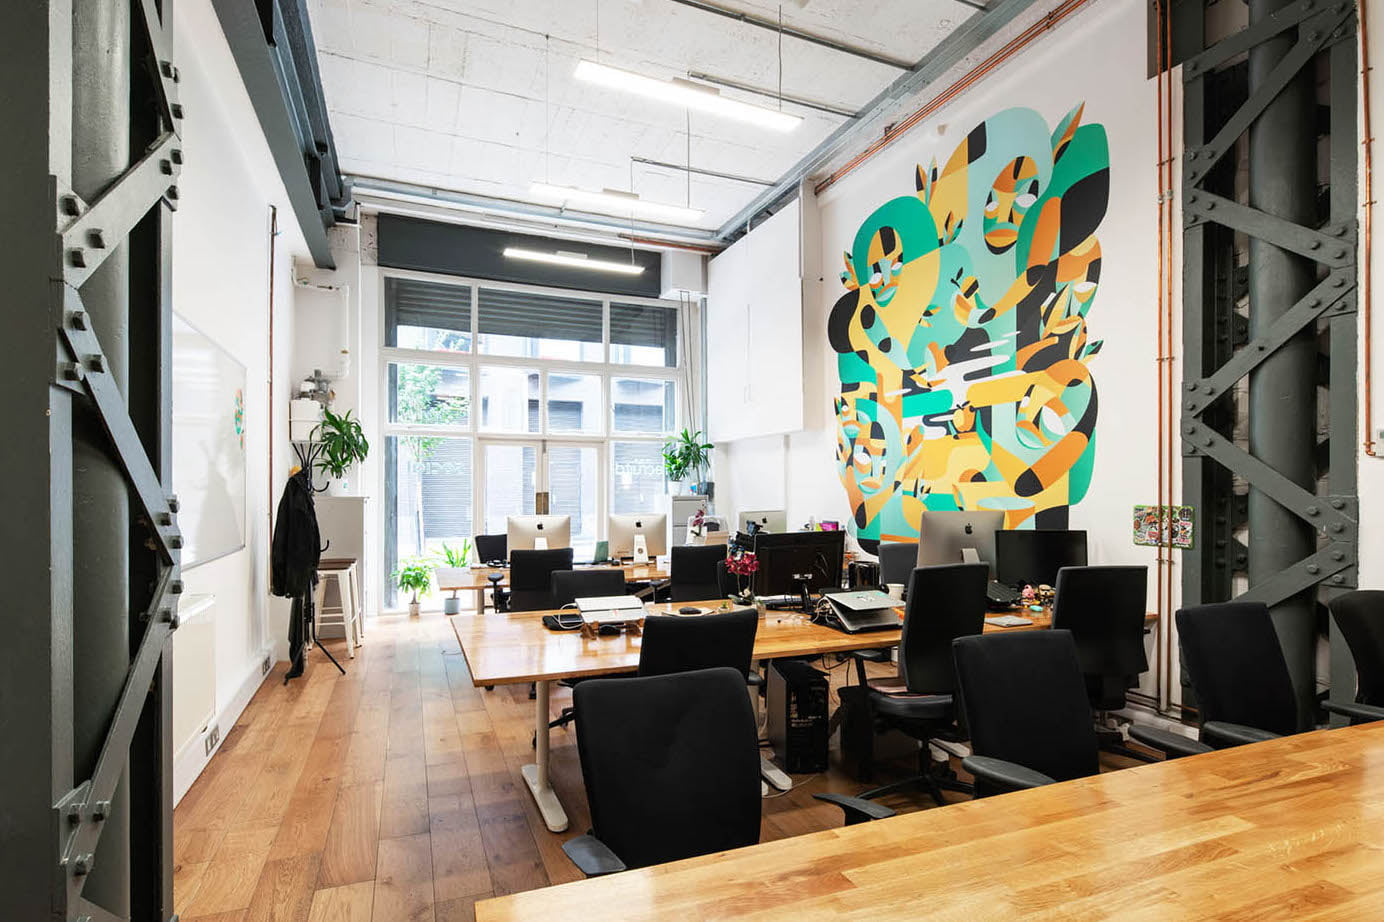 What makes a great office space for tech startups?